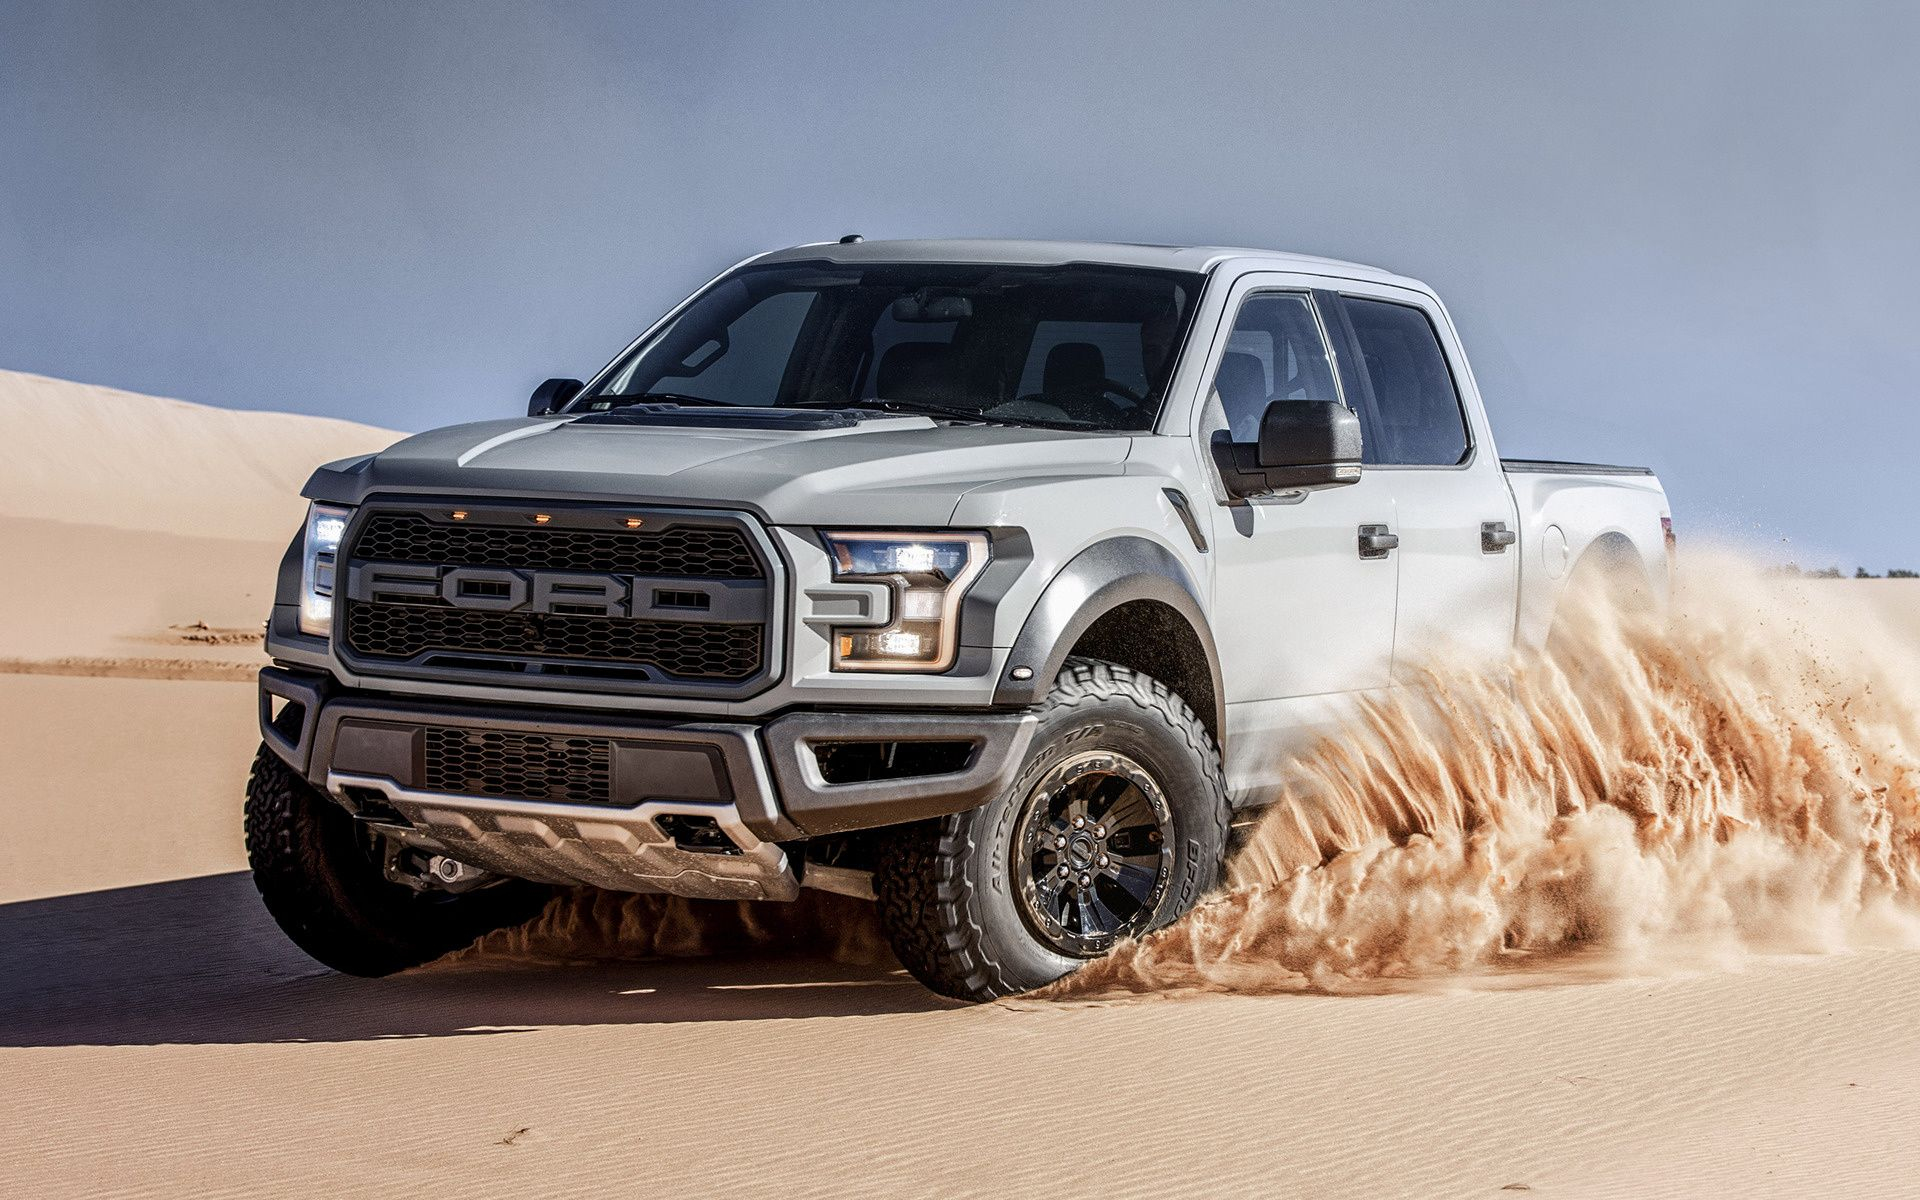 Ford F 150 Raptor Supercrew 2017 Wallpapers And Hd Images Ford Raptor 2017 Ford Raptor Ford F150 Raptor